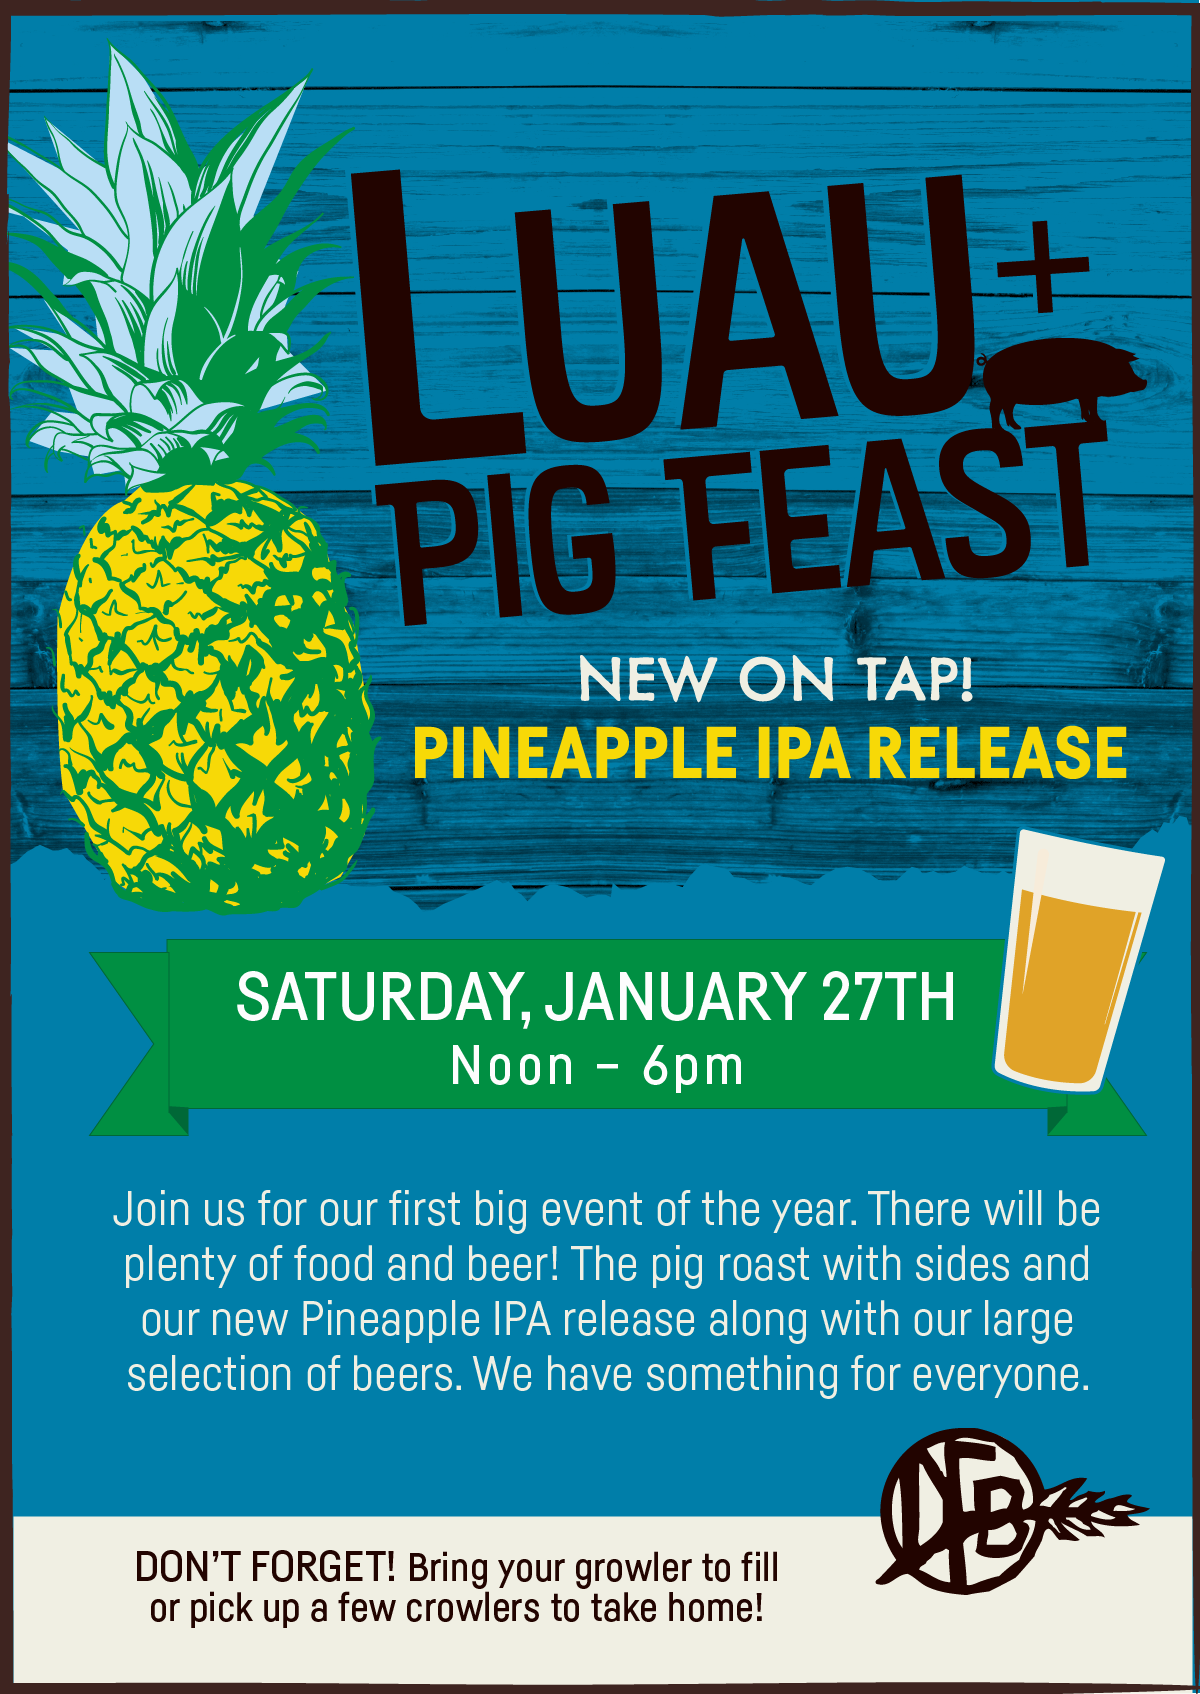 Dirt Farm Luau Pig Feast Event Poster Design